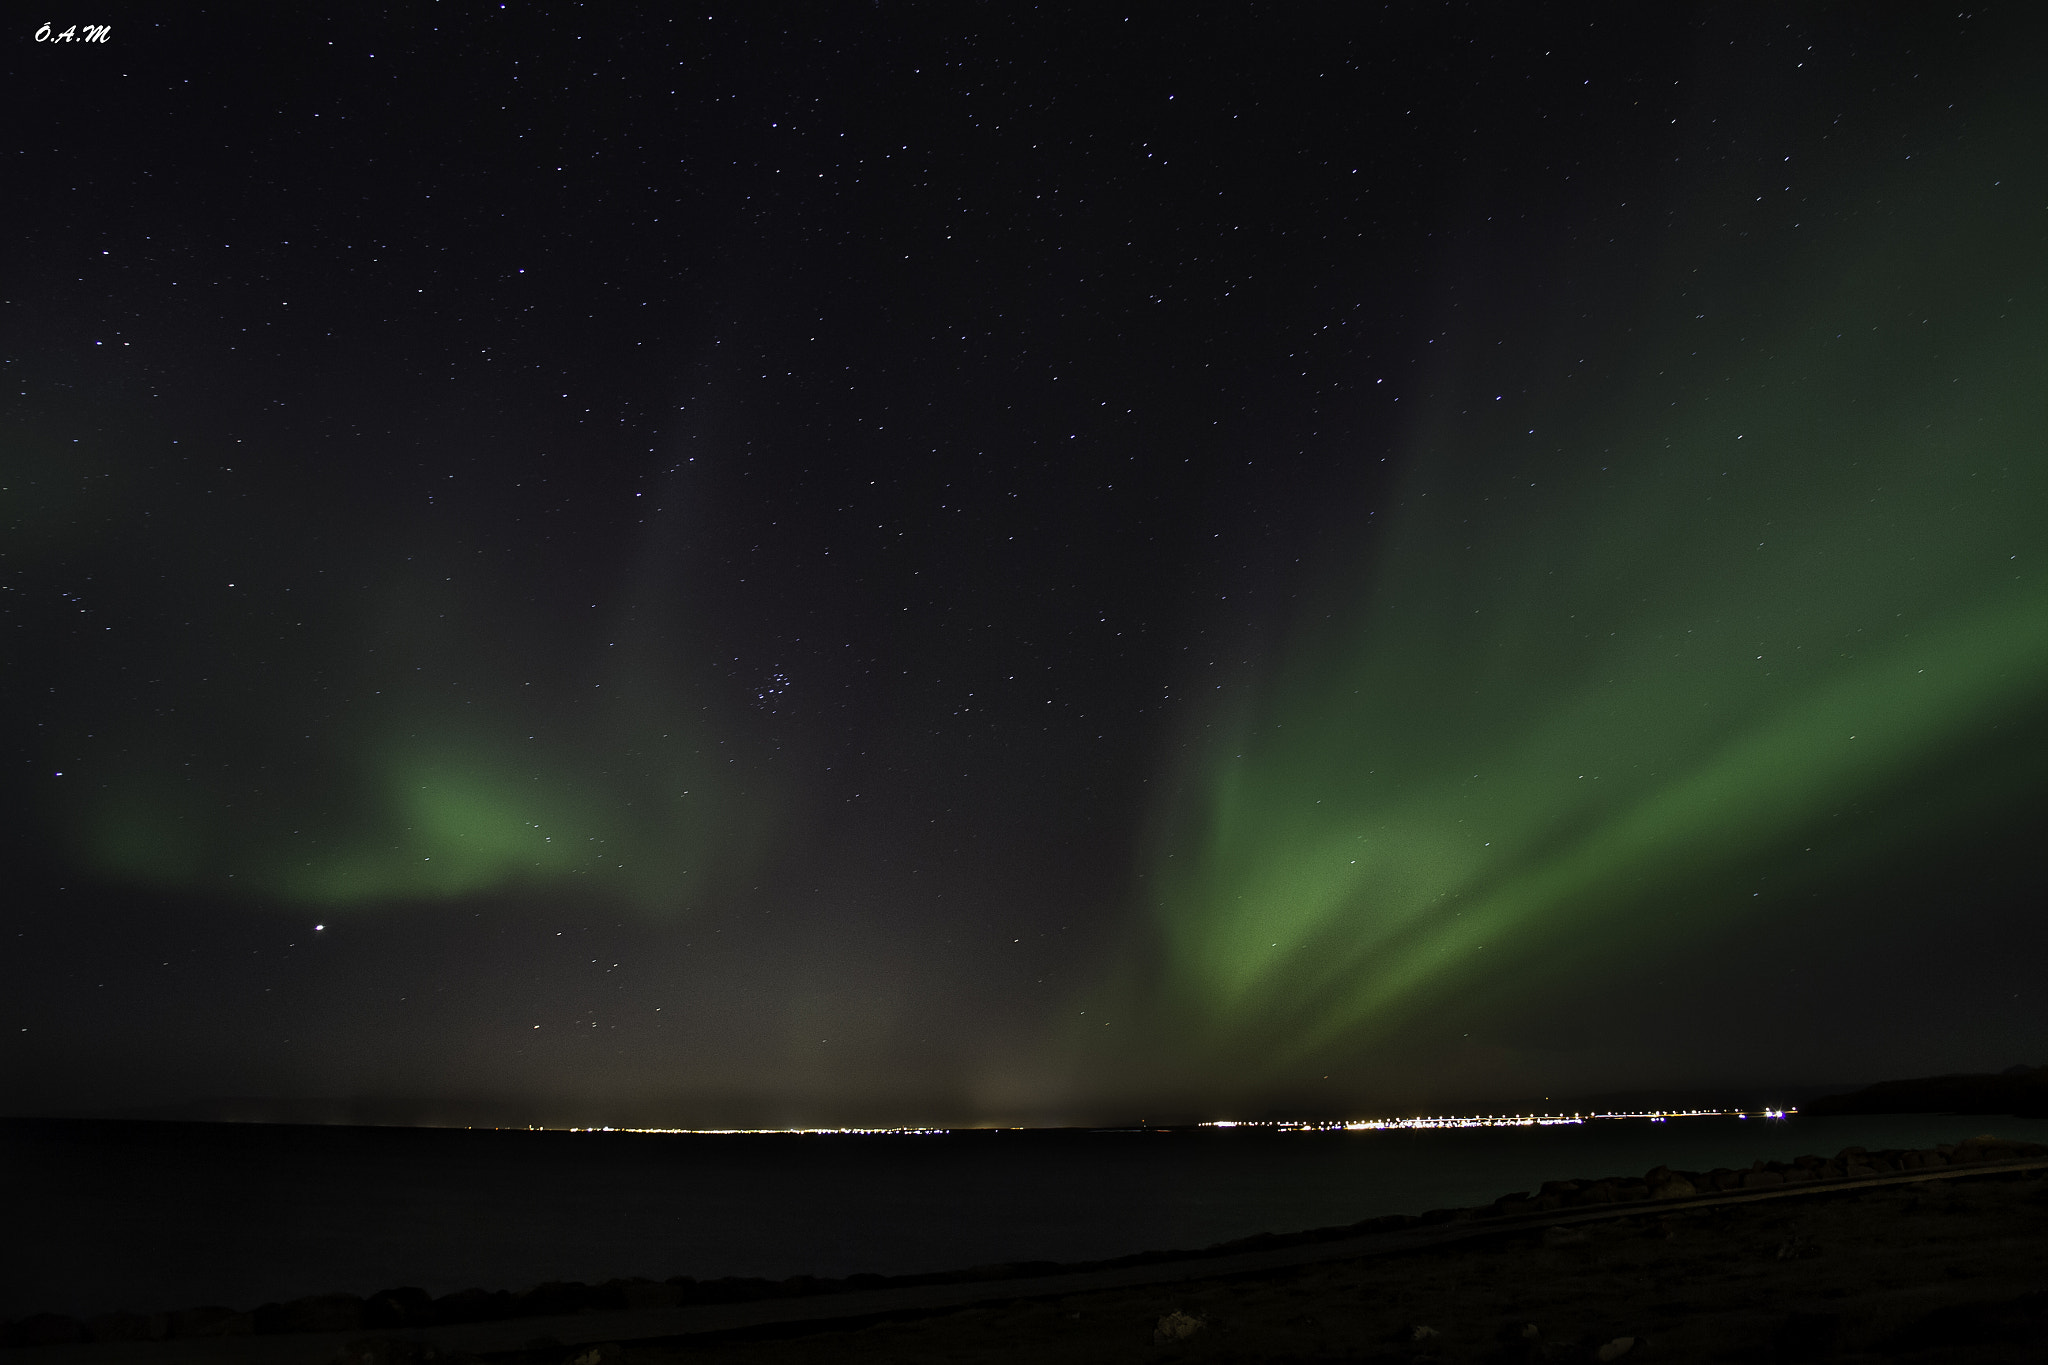 Photograph The northern lights- Iceland by Óli Magg on 500px